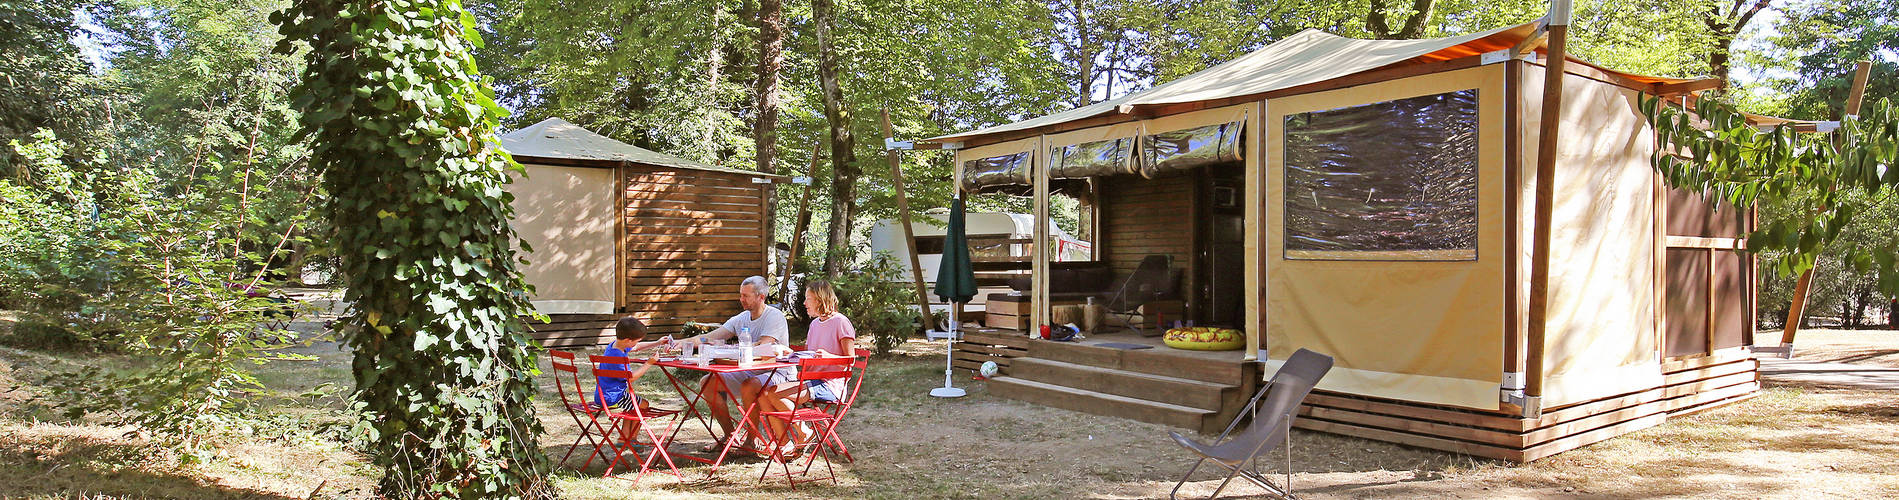 camping-combe-a-leau-bandeau-hebergements-famille